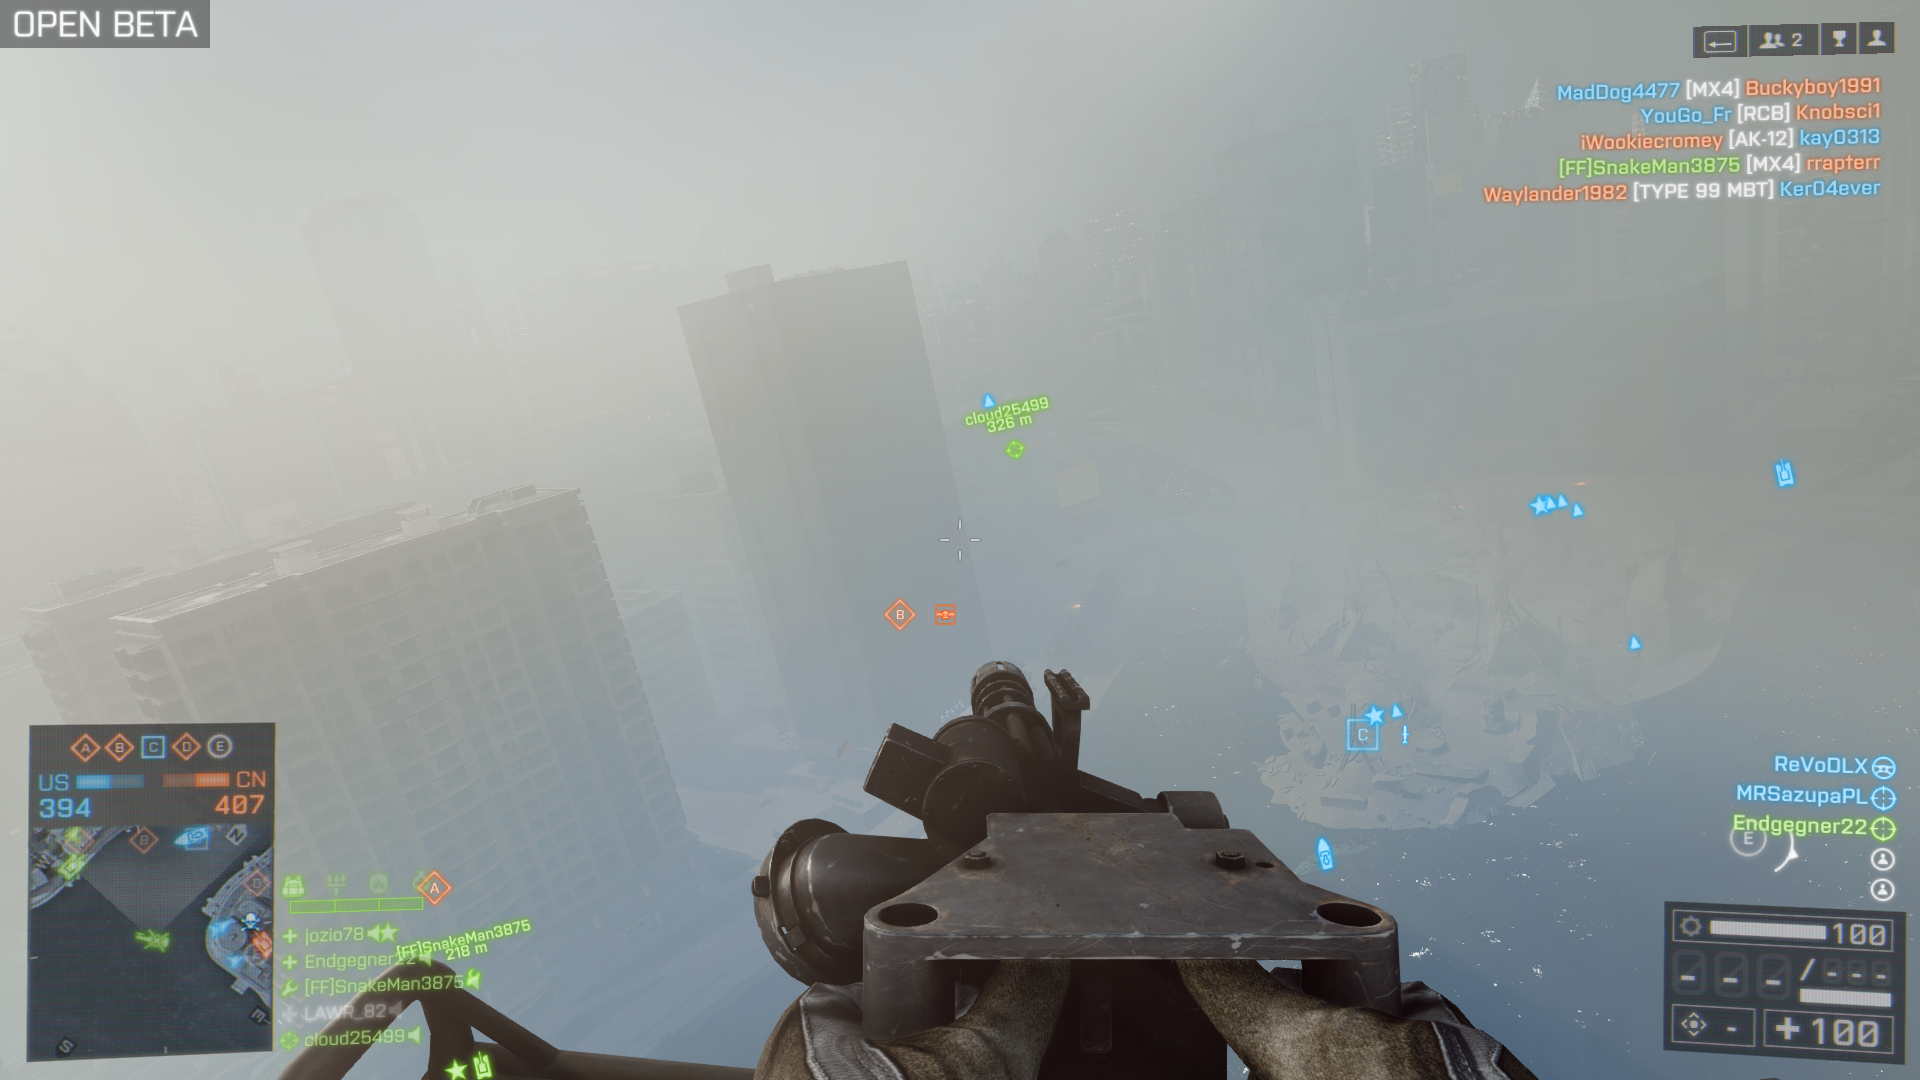 http://endgegner.fightercom.de/BF4_Screenshot/Battlefield4OpenBeta10.png